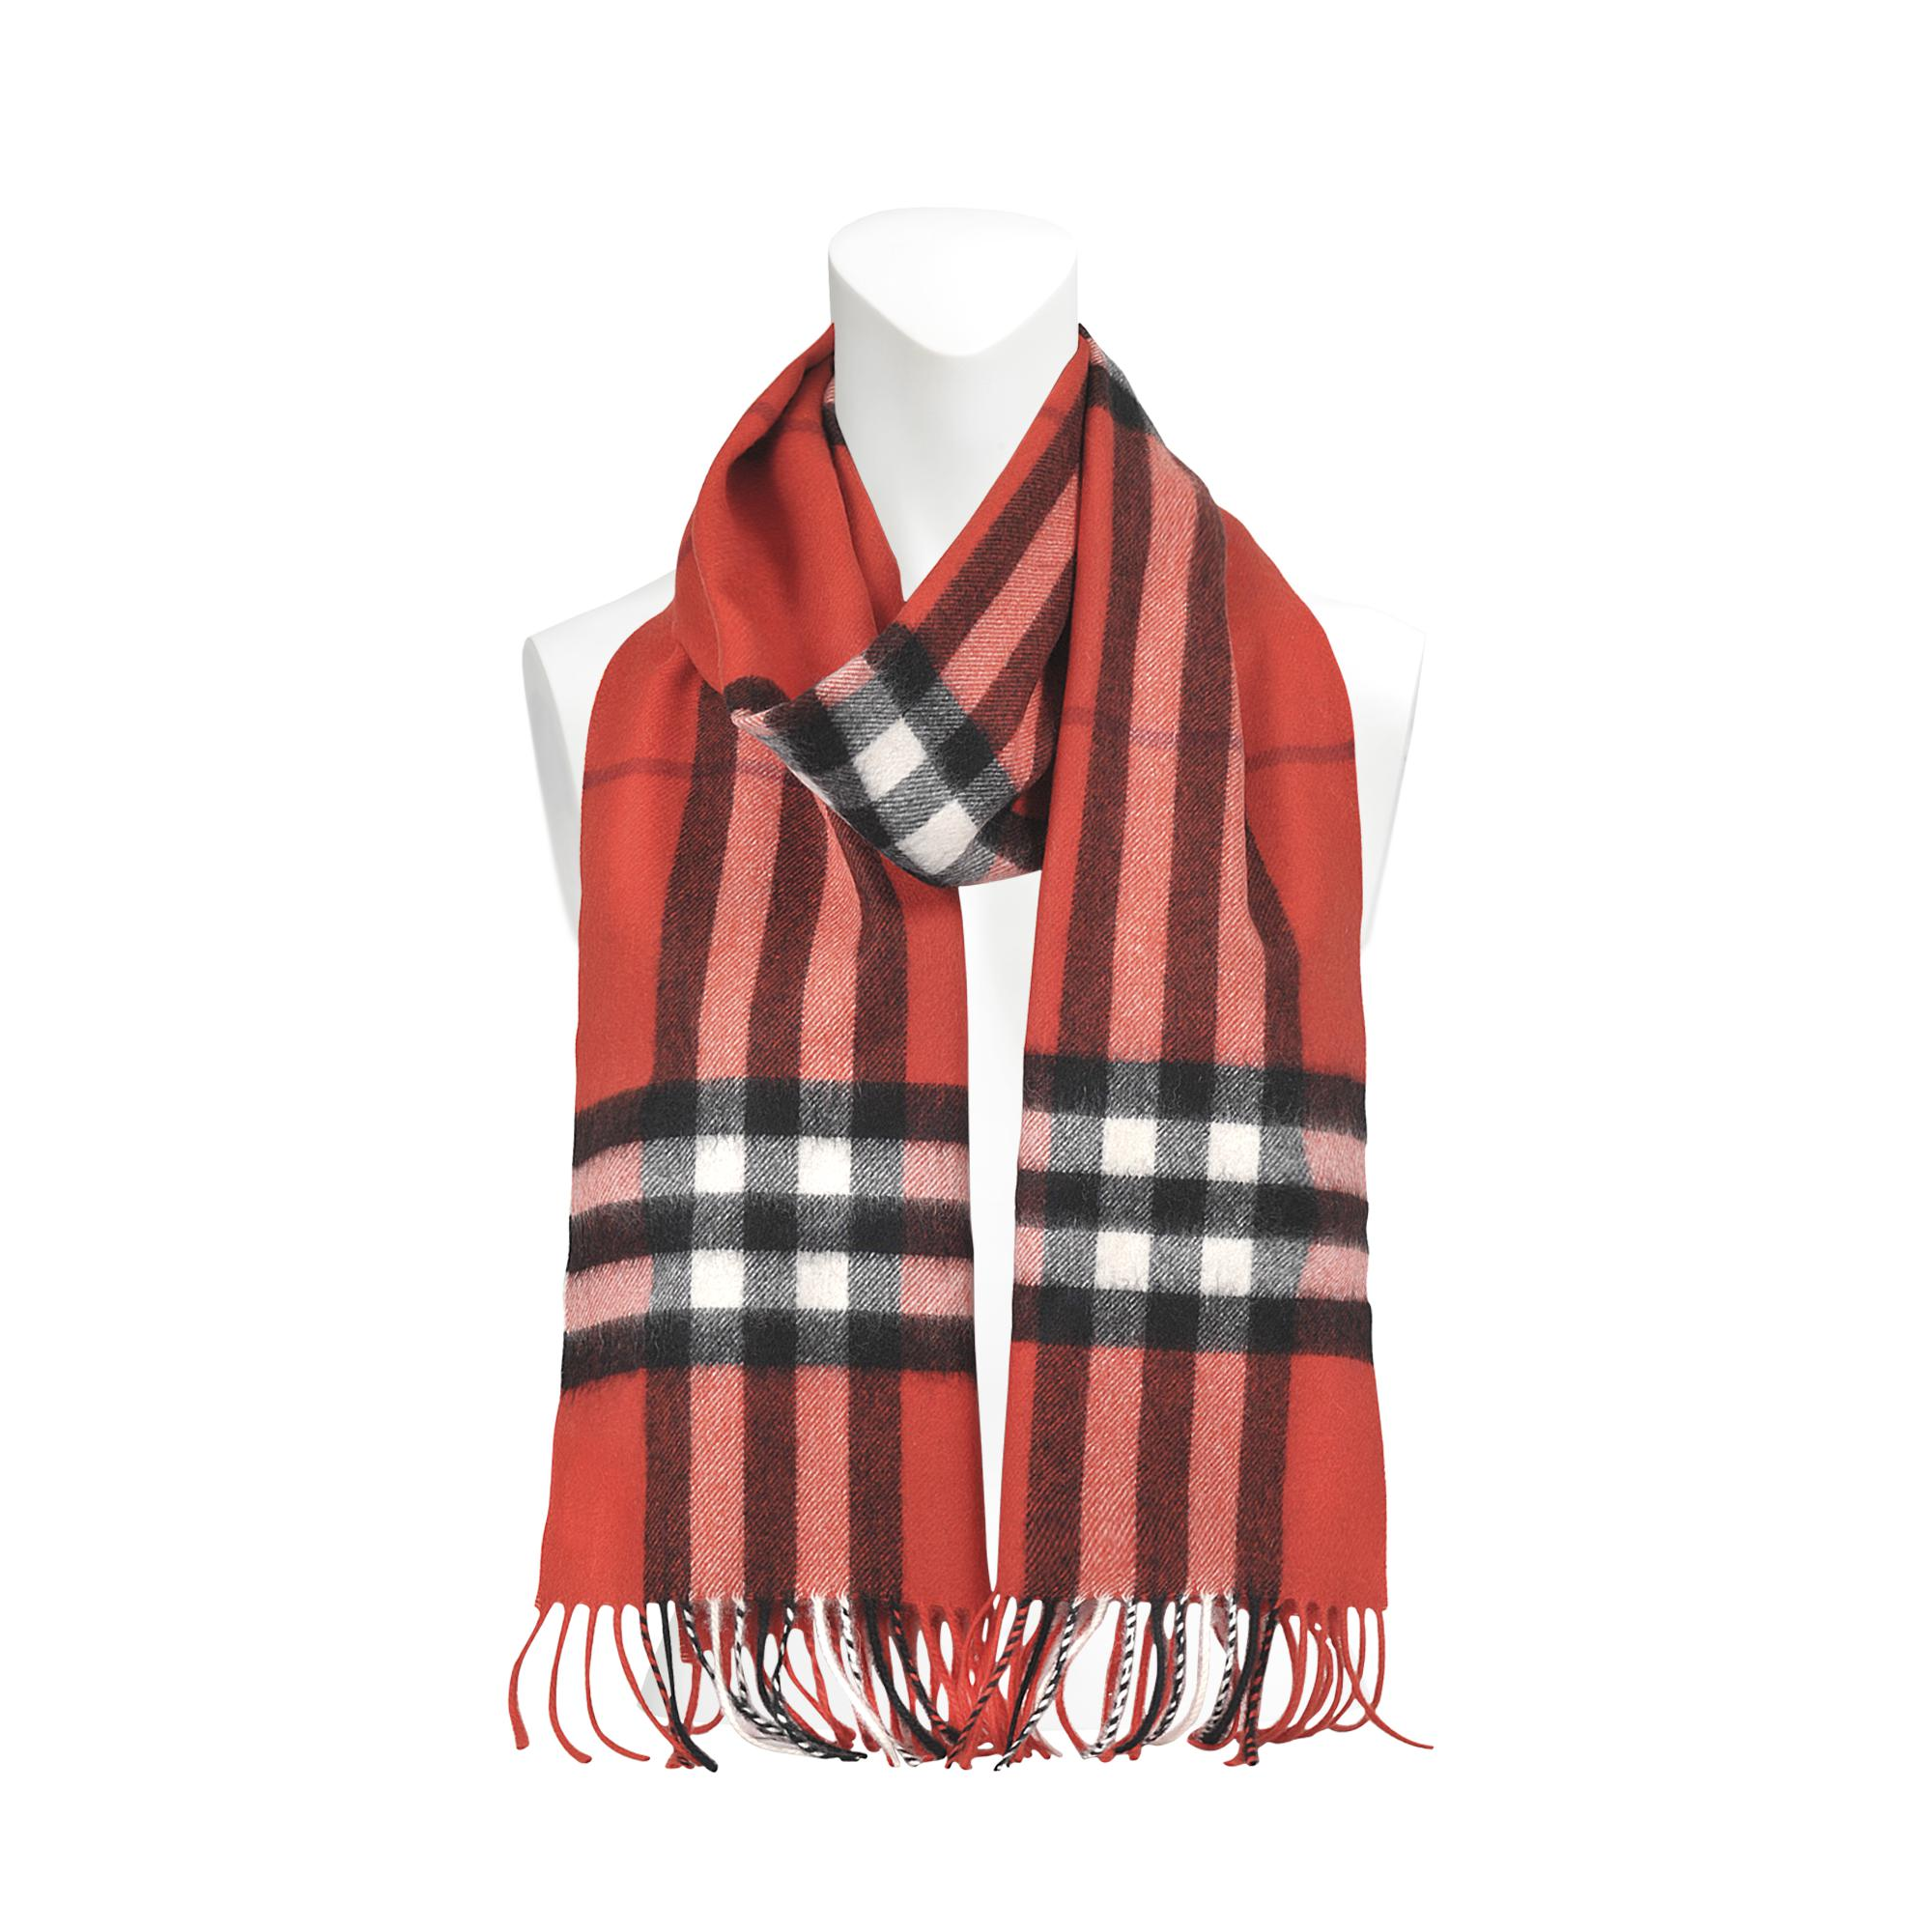 Burberry Giant Icon Check Cashmere Scarf 168x30cm in Red - Lyst c45c498b08d1b